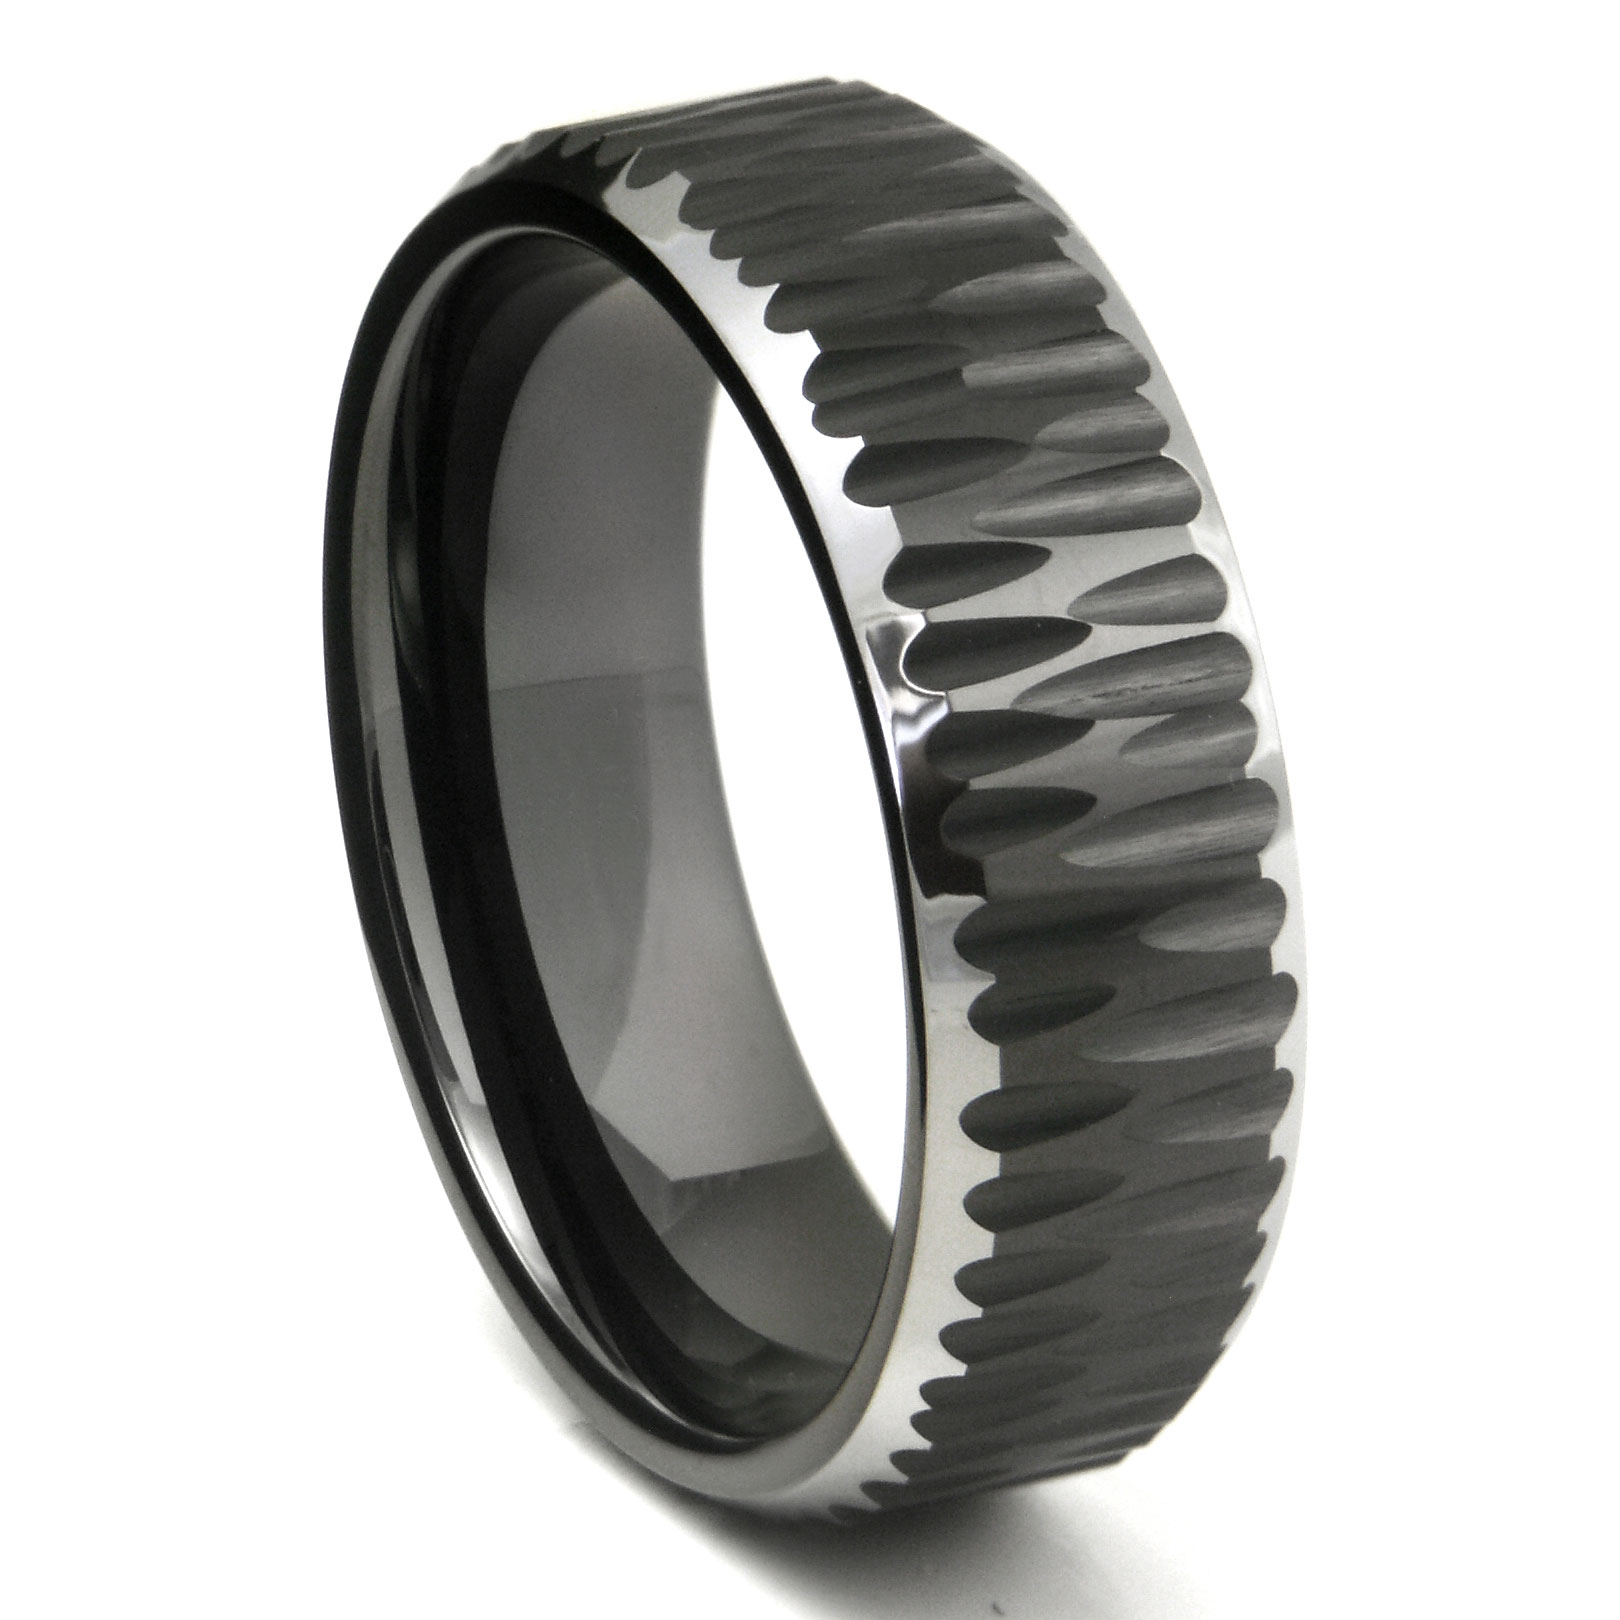 of band or pearl matching unique and set hers his mother mens wedding carbide rings inlay tungsten couples ring men jewelry women p for bands